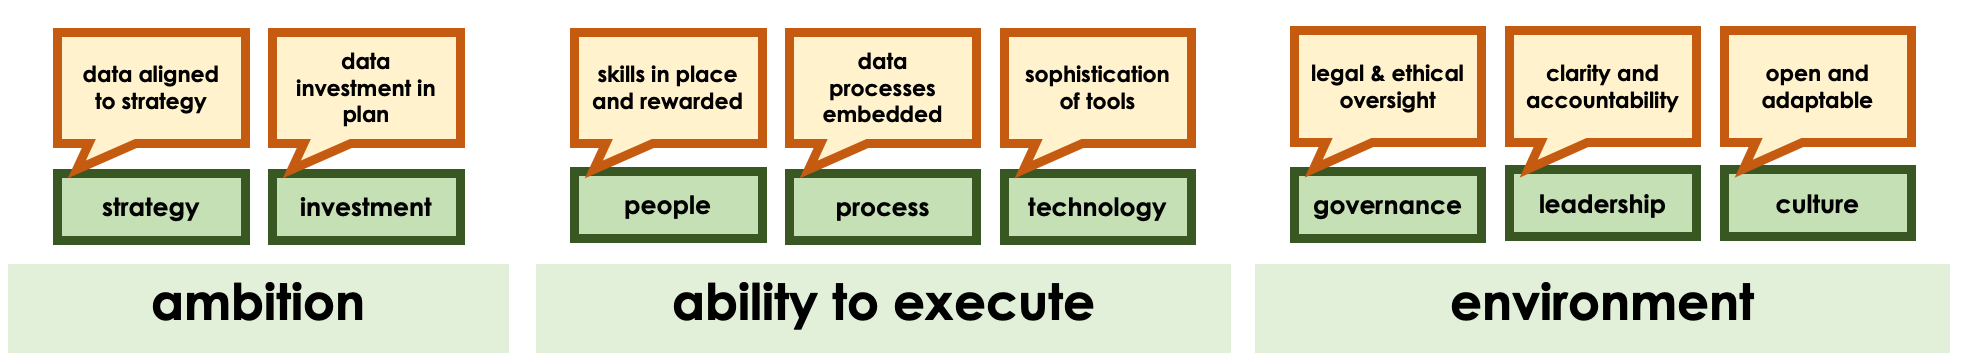 """Model showing 8 areas across the 3 main themes for success. For """"ambition"""" the areas are 1. strategy (data aligned to strategy) and 2. investment (data investment in plan). For """"ability to execute"""", the areas are 3. people (skills in place and rewarded), 4. process data (processes embedded) and 5. technology (sophistication of tools). finally for """"environment"""" areas are 6. governance (ethical oversight), 7. leadership (clarity and accoutability) and 8. culture (open and adaptable)"""